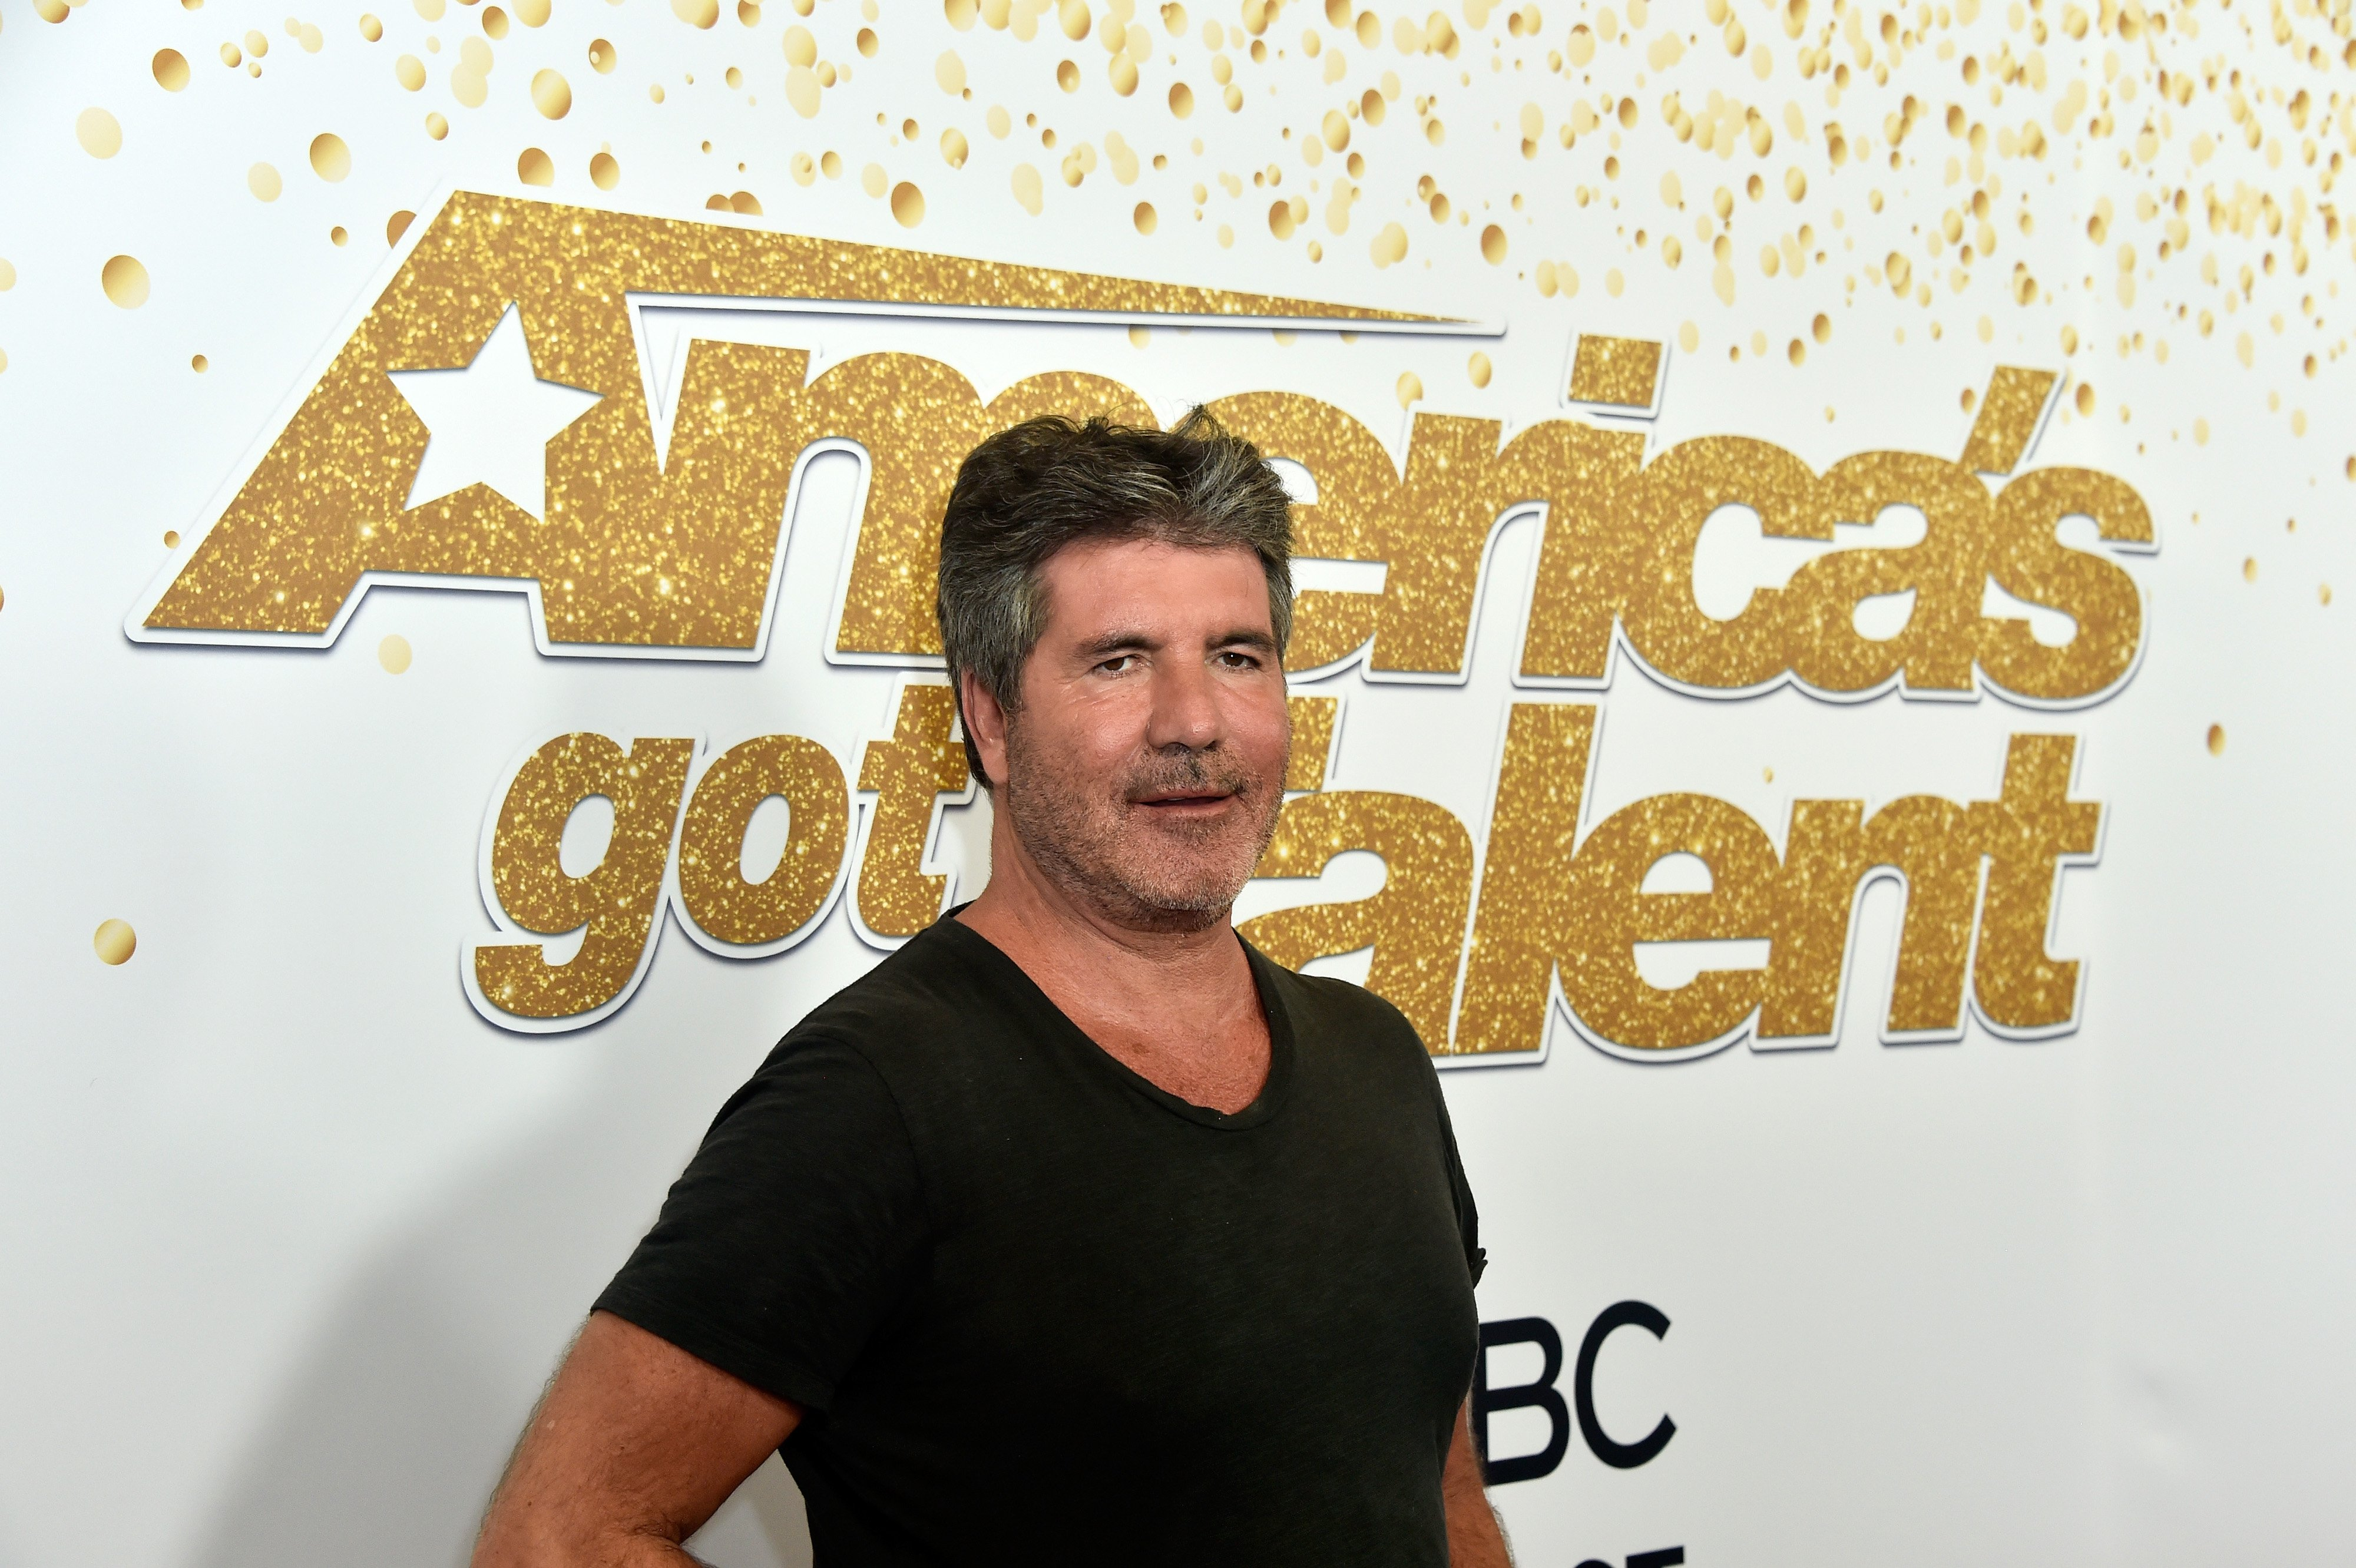 Simon Cowell at Dolby Theatre on August 14, 2018 | Photo: Getty Images